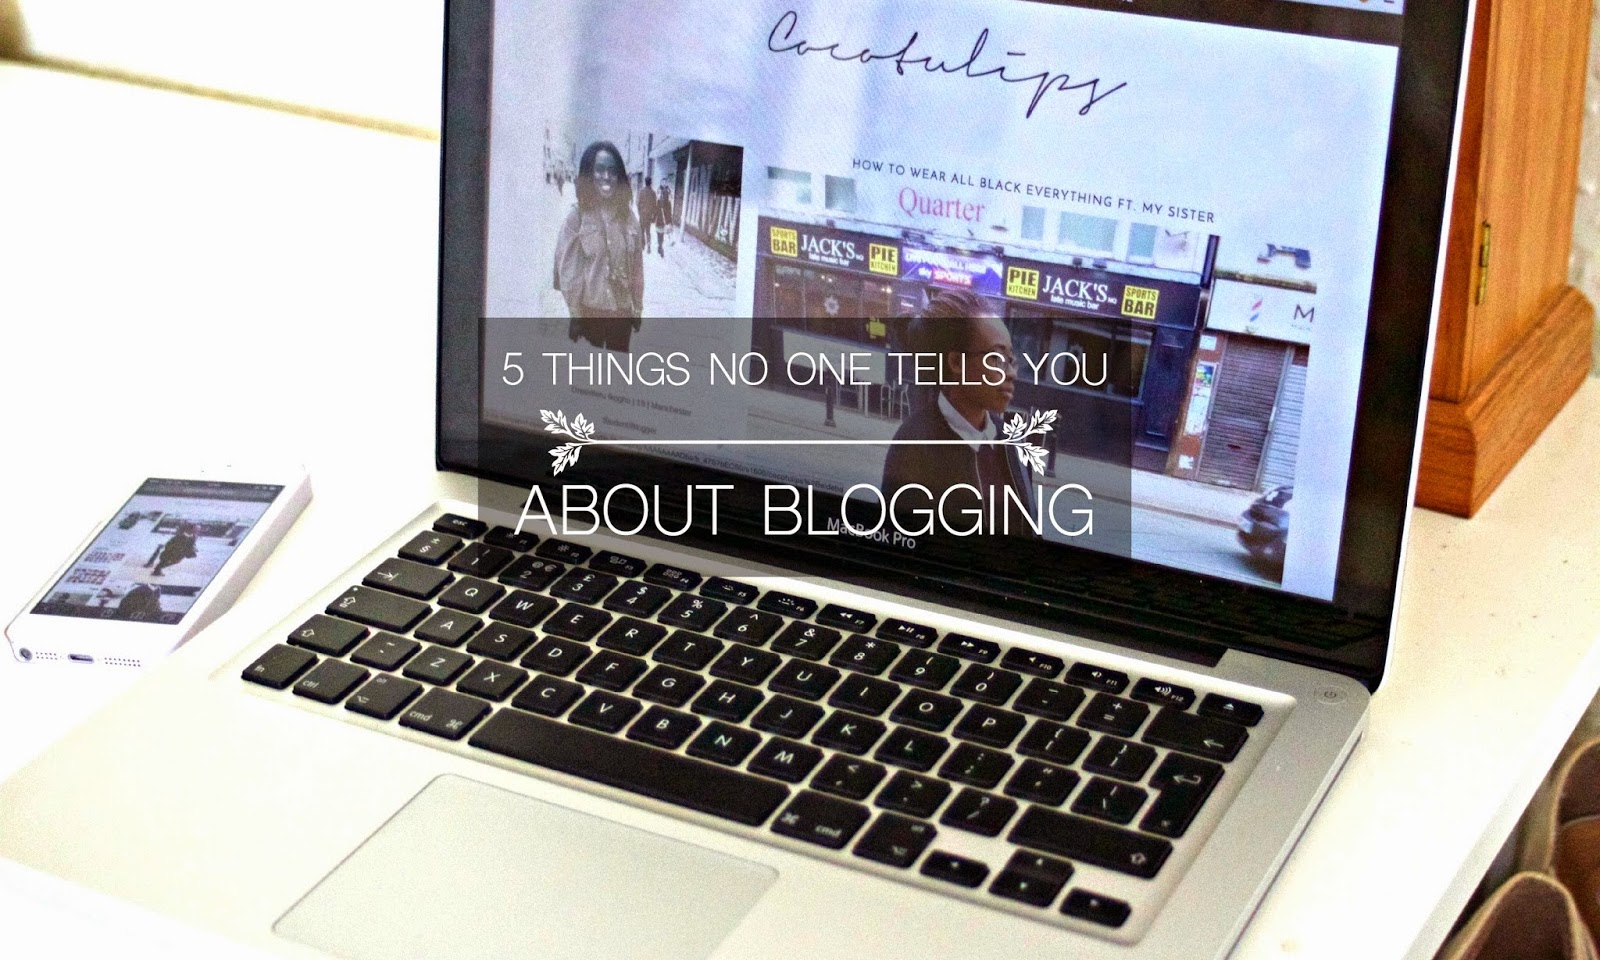 5 Things No One Tells You About Blogging